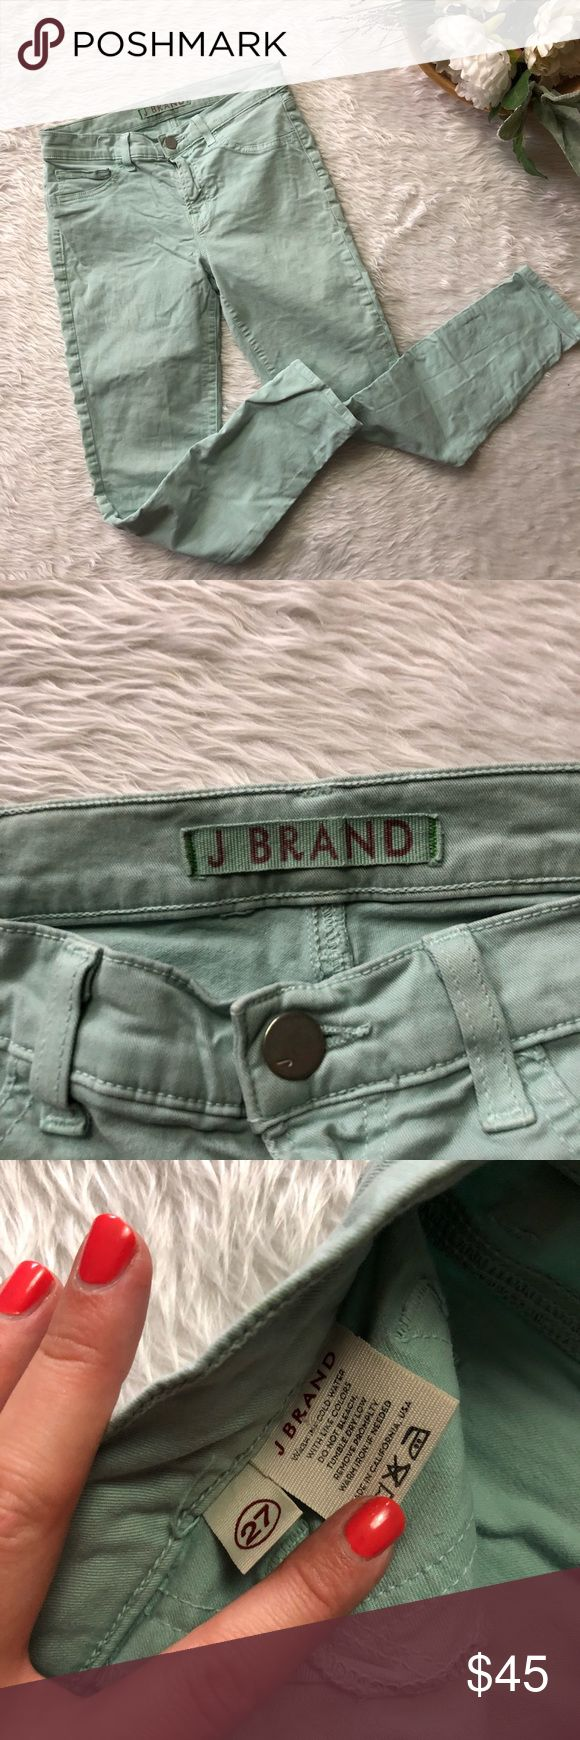 J.Brand Mint Capri This pant is in great condition! Size 27  Waist is approx 14 inches  Inseam is approx 25 inches Rise is 8.5 inches  Smoke and pet free home! No flaws like stains or holes! No modeling No trades! J Brand Pants Ankle & Cropped